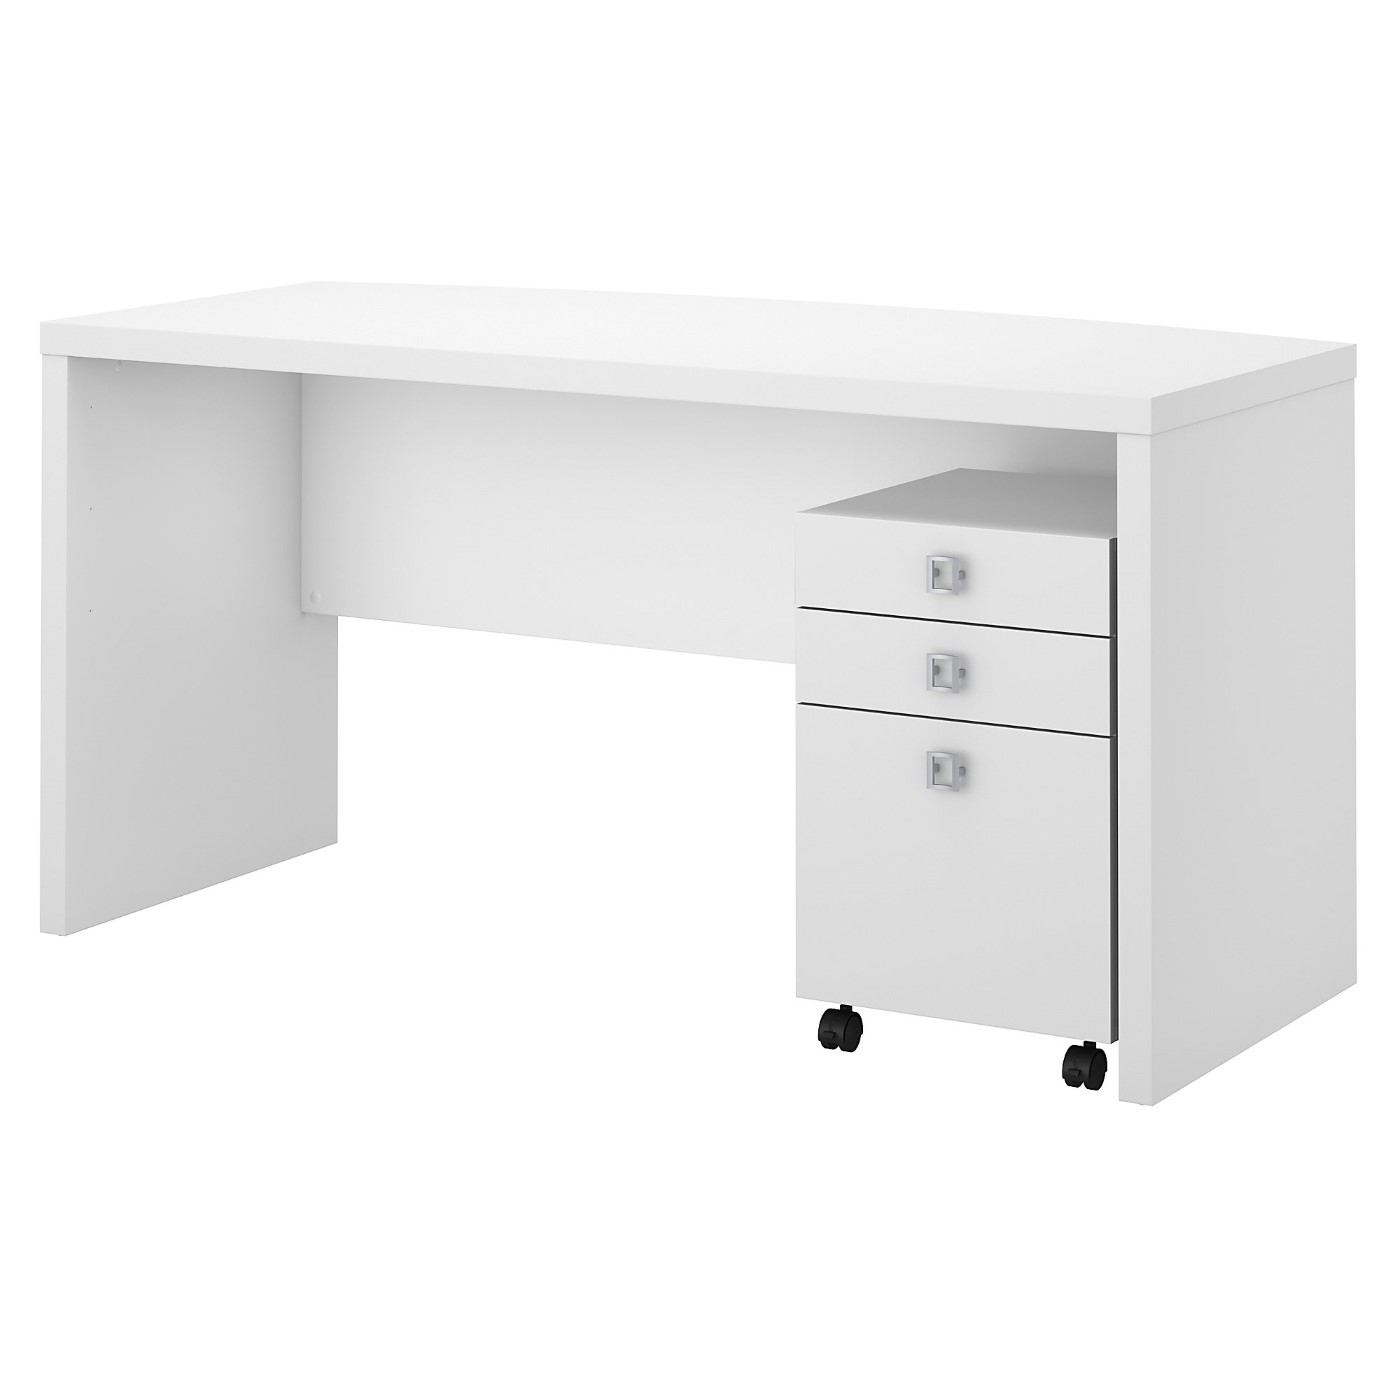 OFFICE BY KATHY IRELAND� ECHO BOW FRONT DESK WITH MOBILE FILE CABINET. FREE SHIPPING